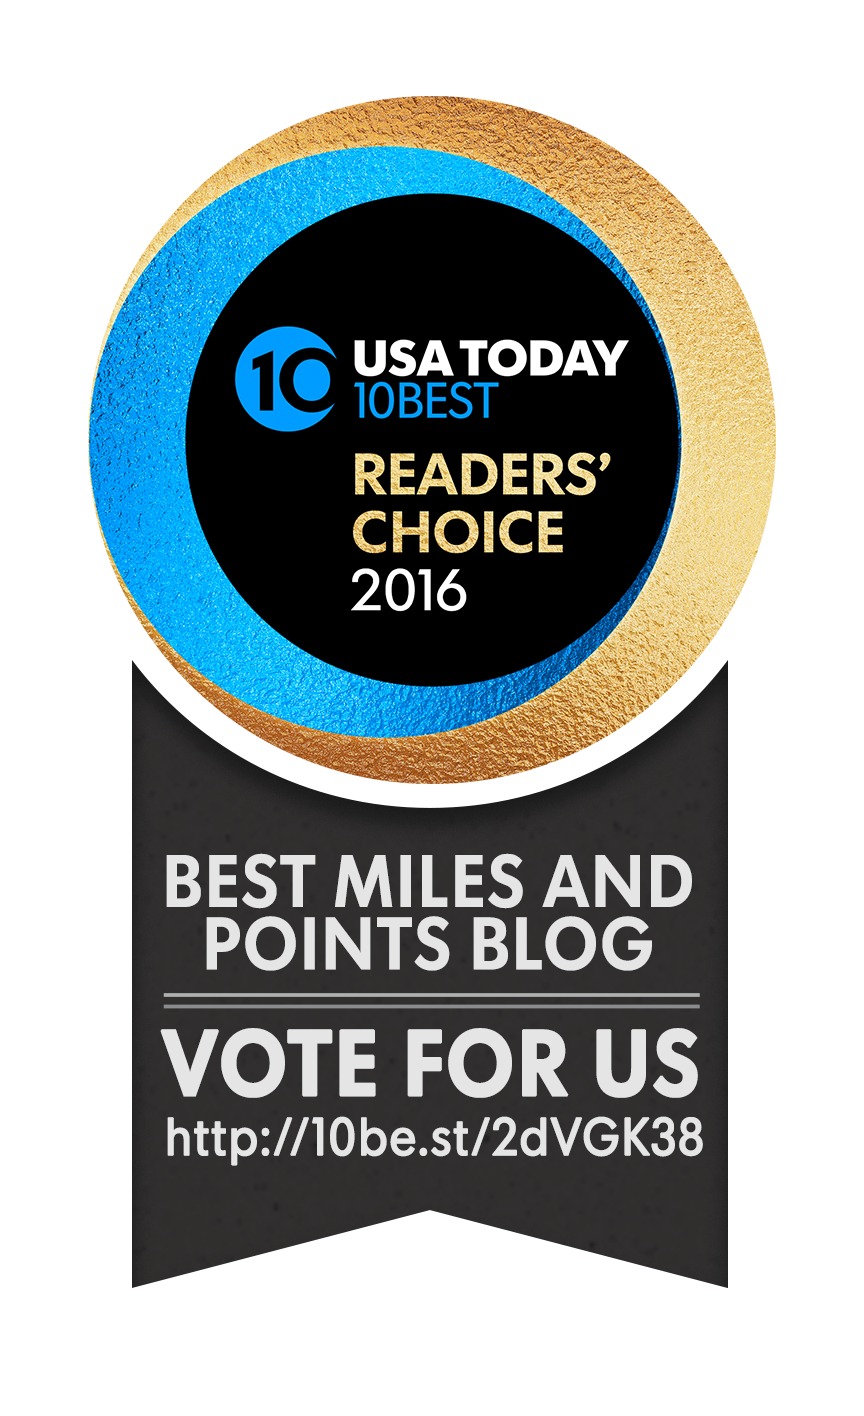 VOTE FOR MILES MOMMA – USA TODAY 10 BEST MILES & POINTS BLOG